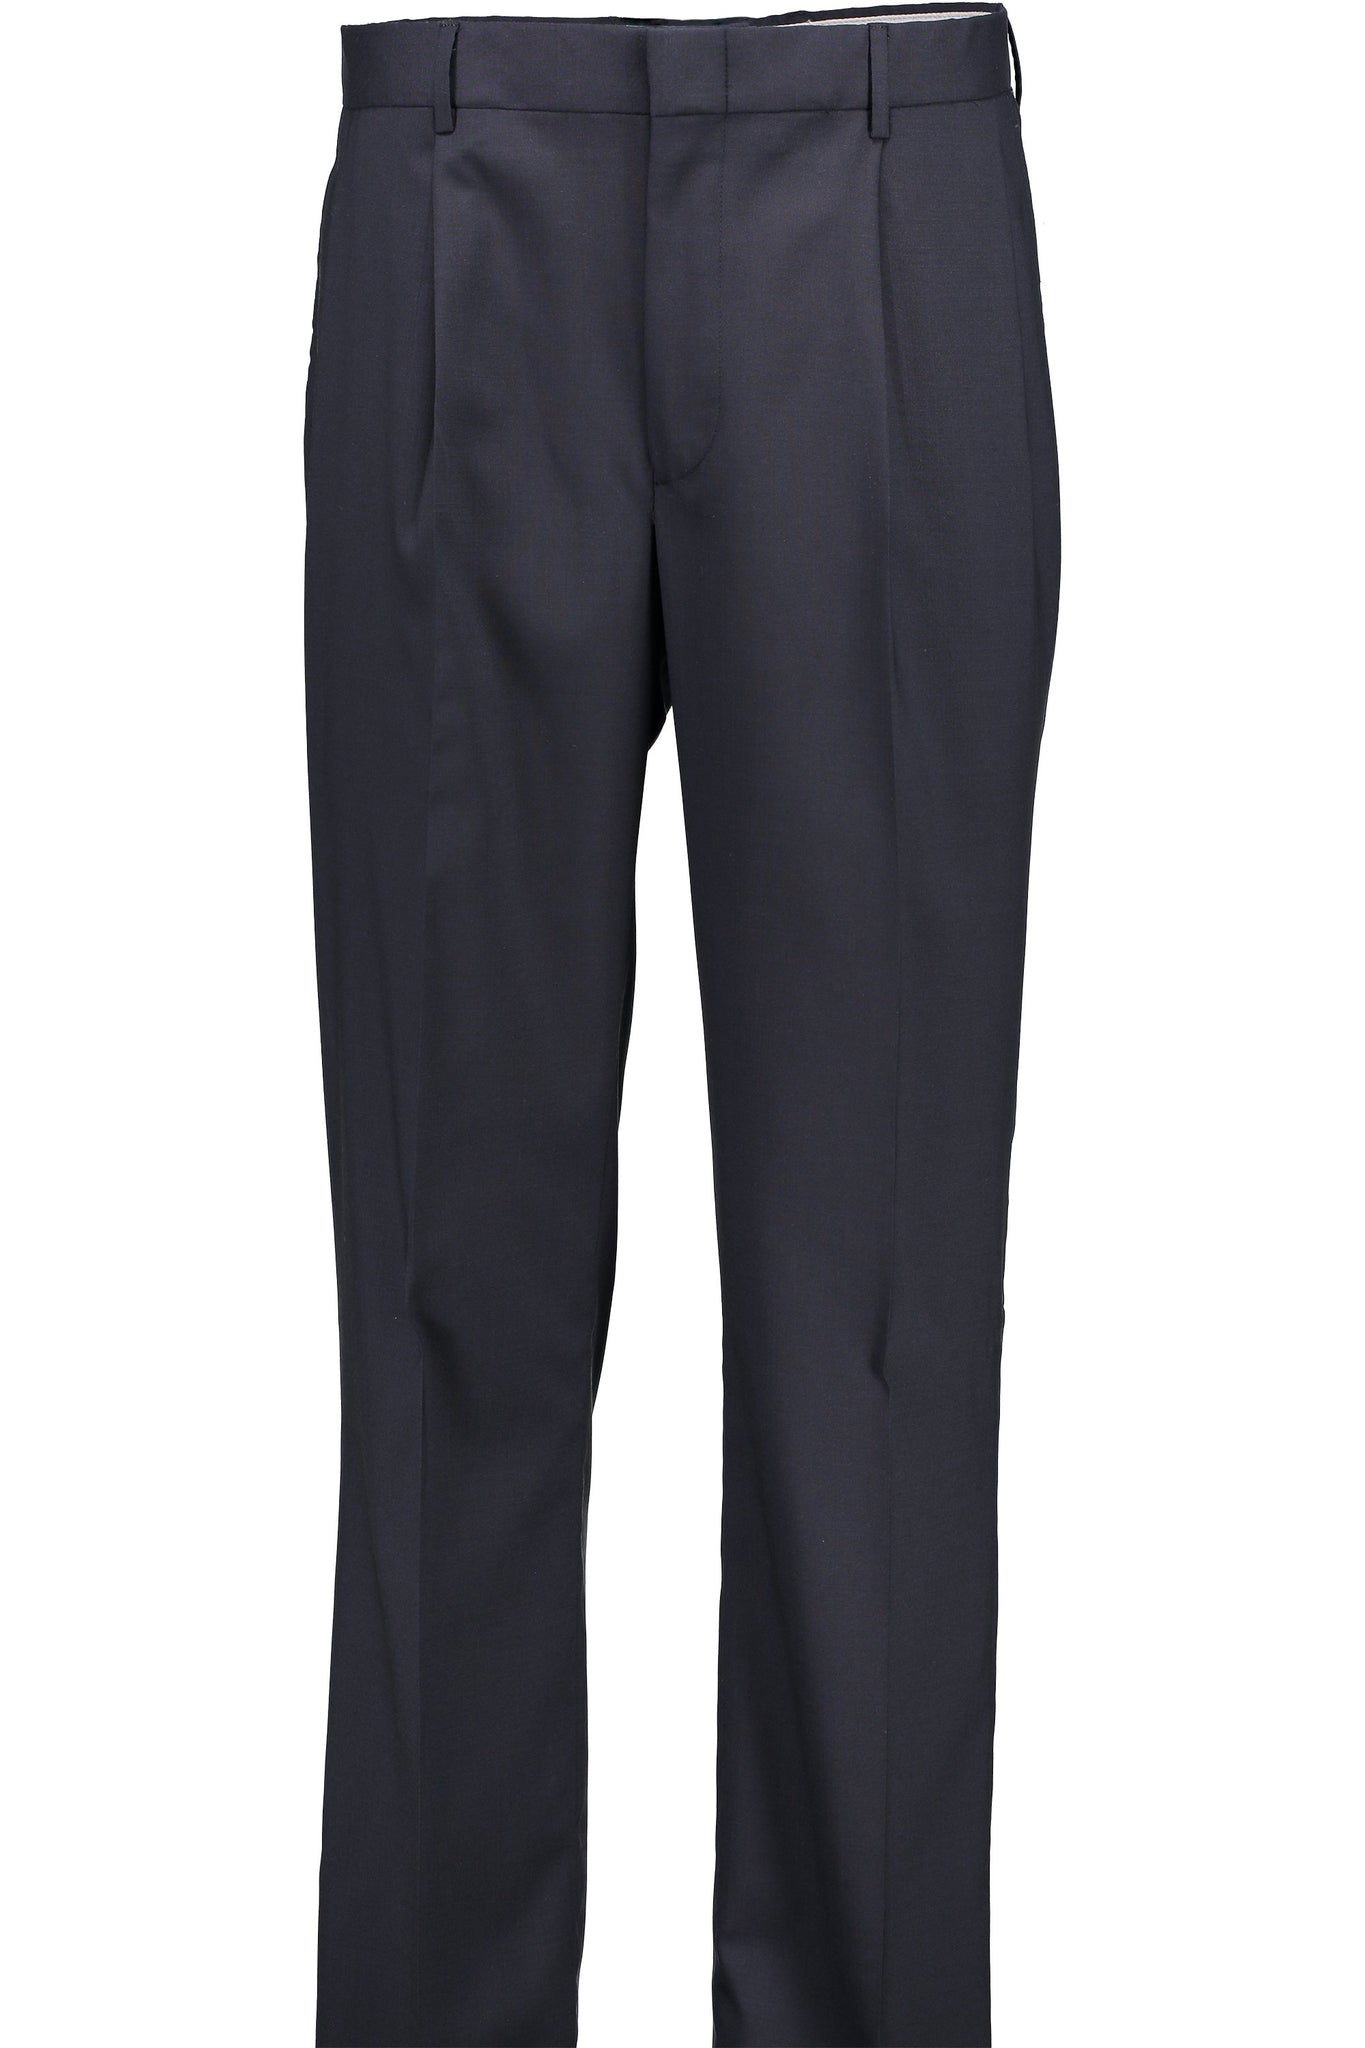 Classic Fit Navy H-Tech Wool Suit Separate Pleated Pant -  Hardwick.com